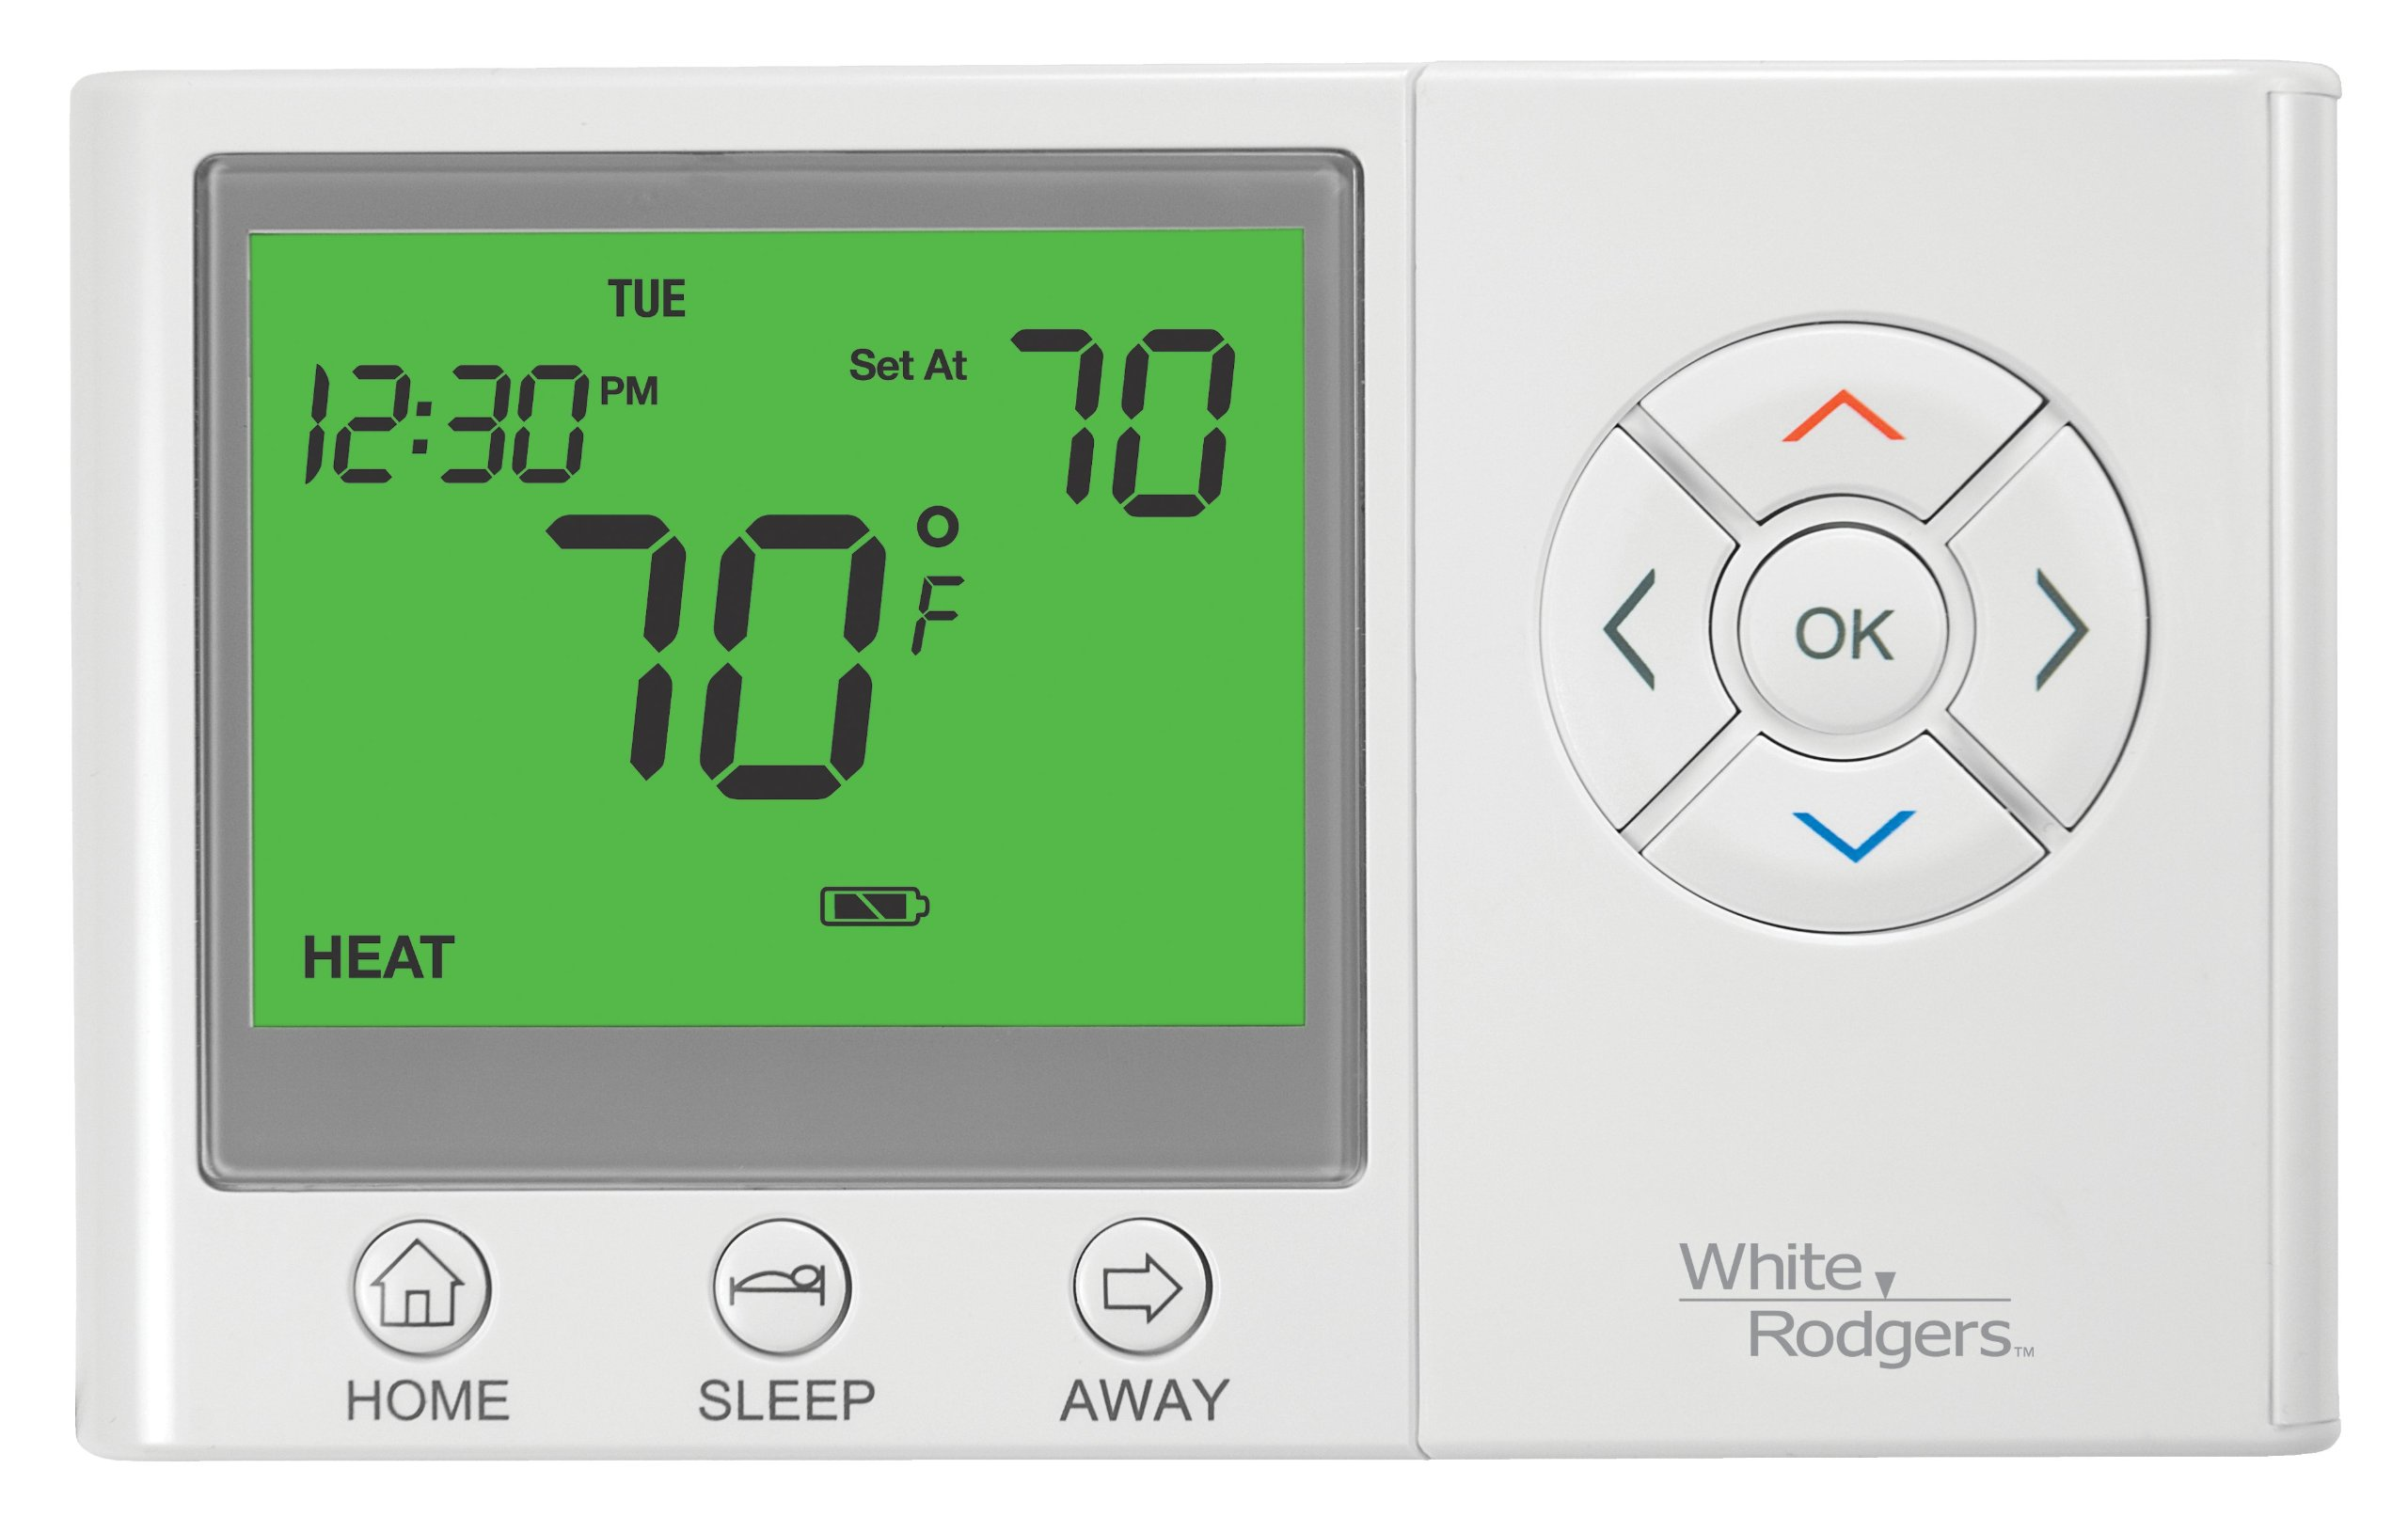 Emerson UP300 7-Day Programmable Thermostat With Home/Sleep/Away Presets by White-Rodgers (Image #1)